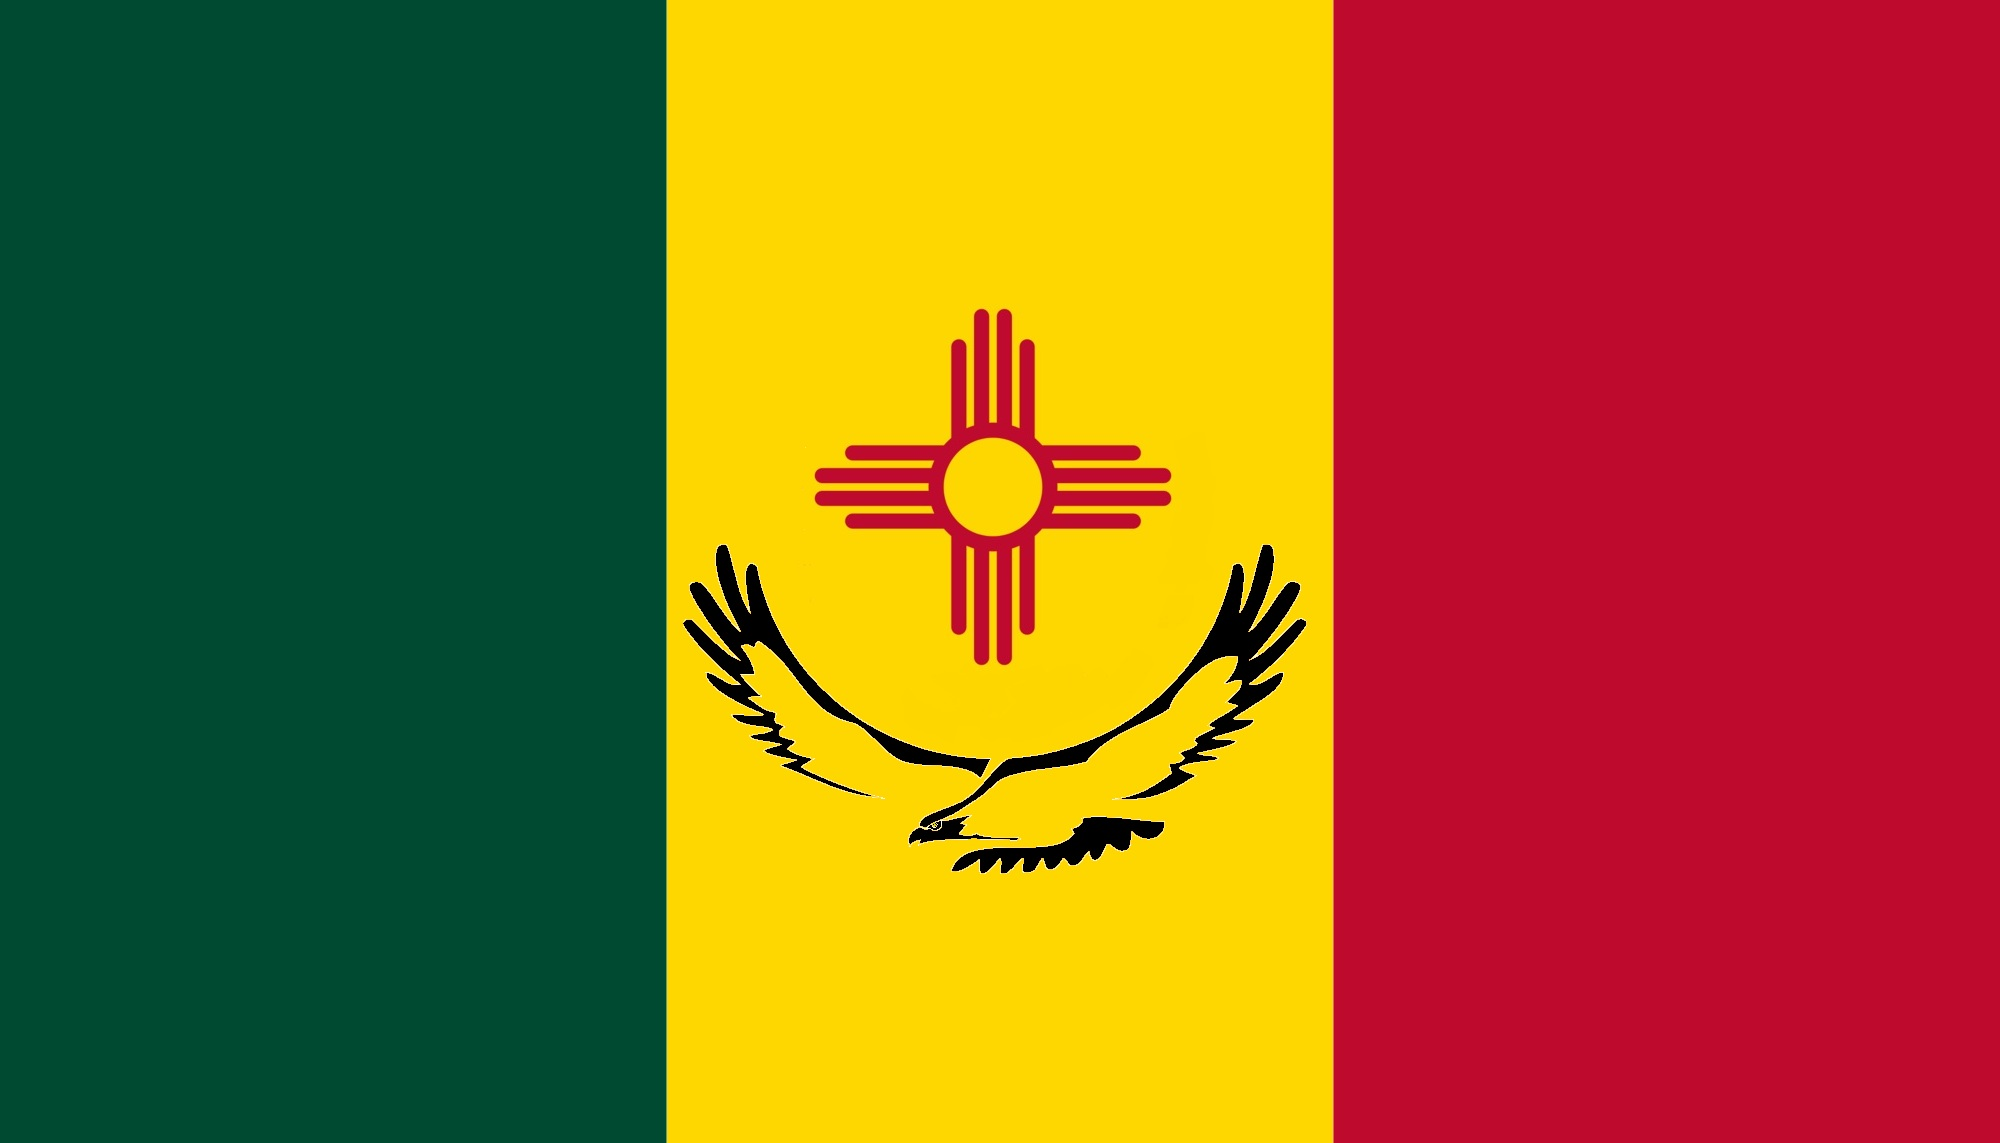 image new mexico state flag proposal no 2 designed by stephen